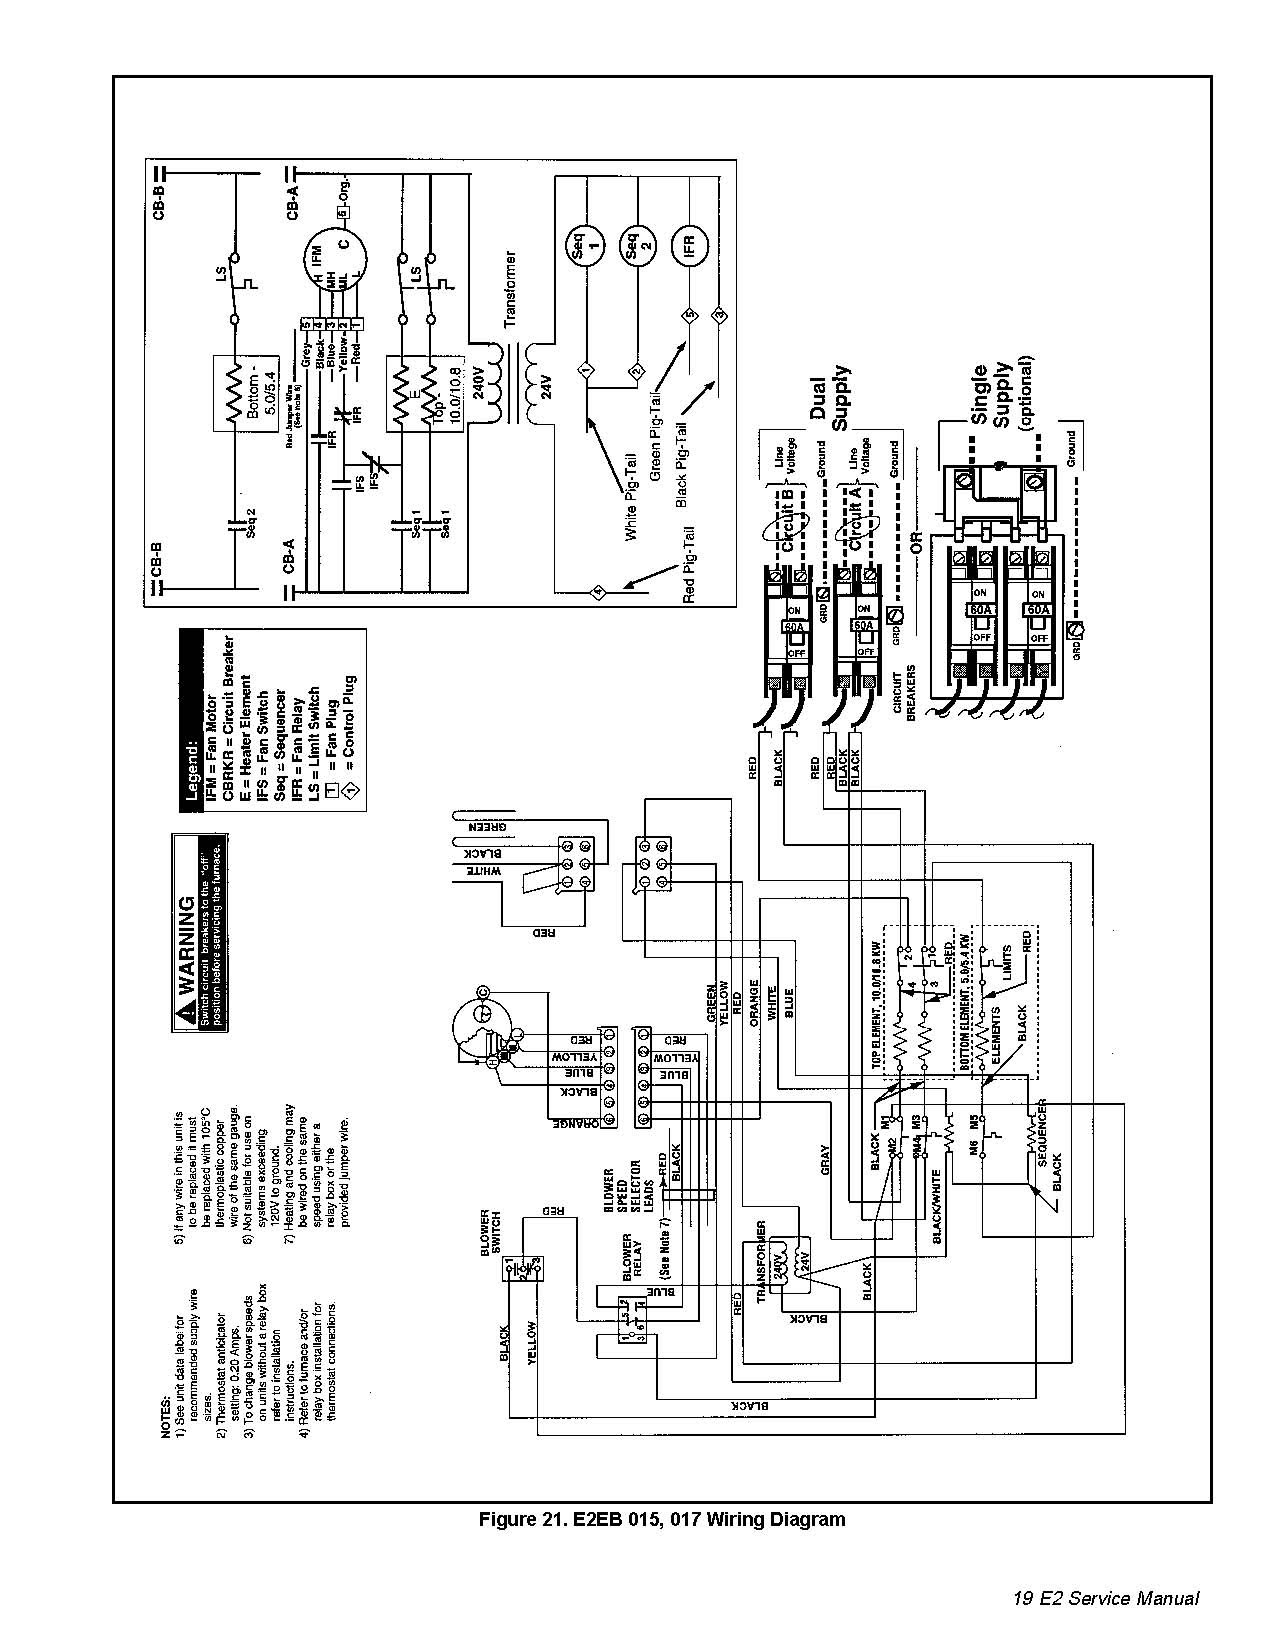 Nordyne Furnace Wiring Diagram Download